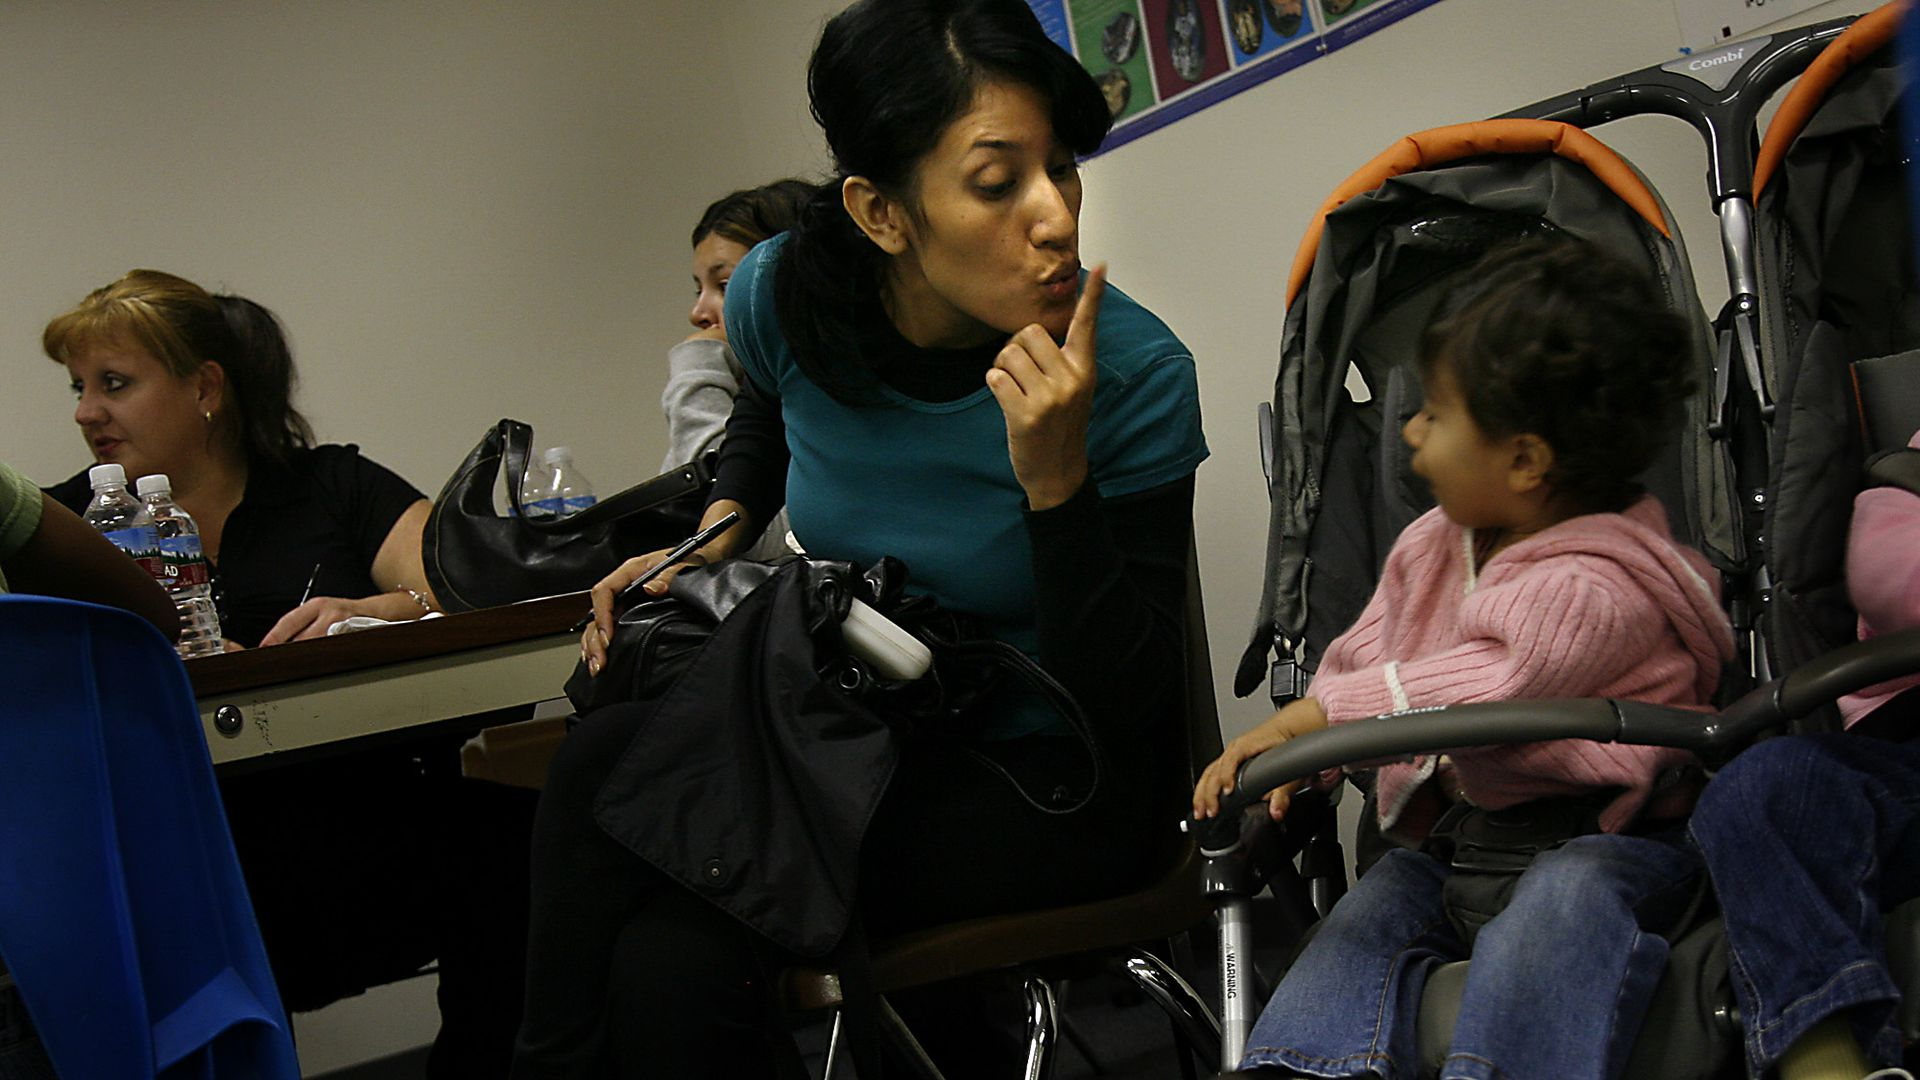 Delia Garcia, of Tustin, tries to quiet her daughter Nicole, 1, while she attempts to fill out paperwork